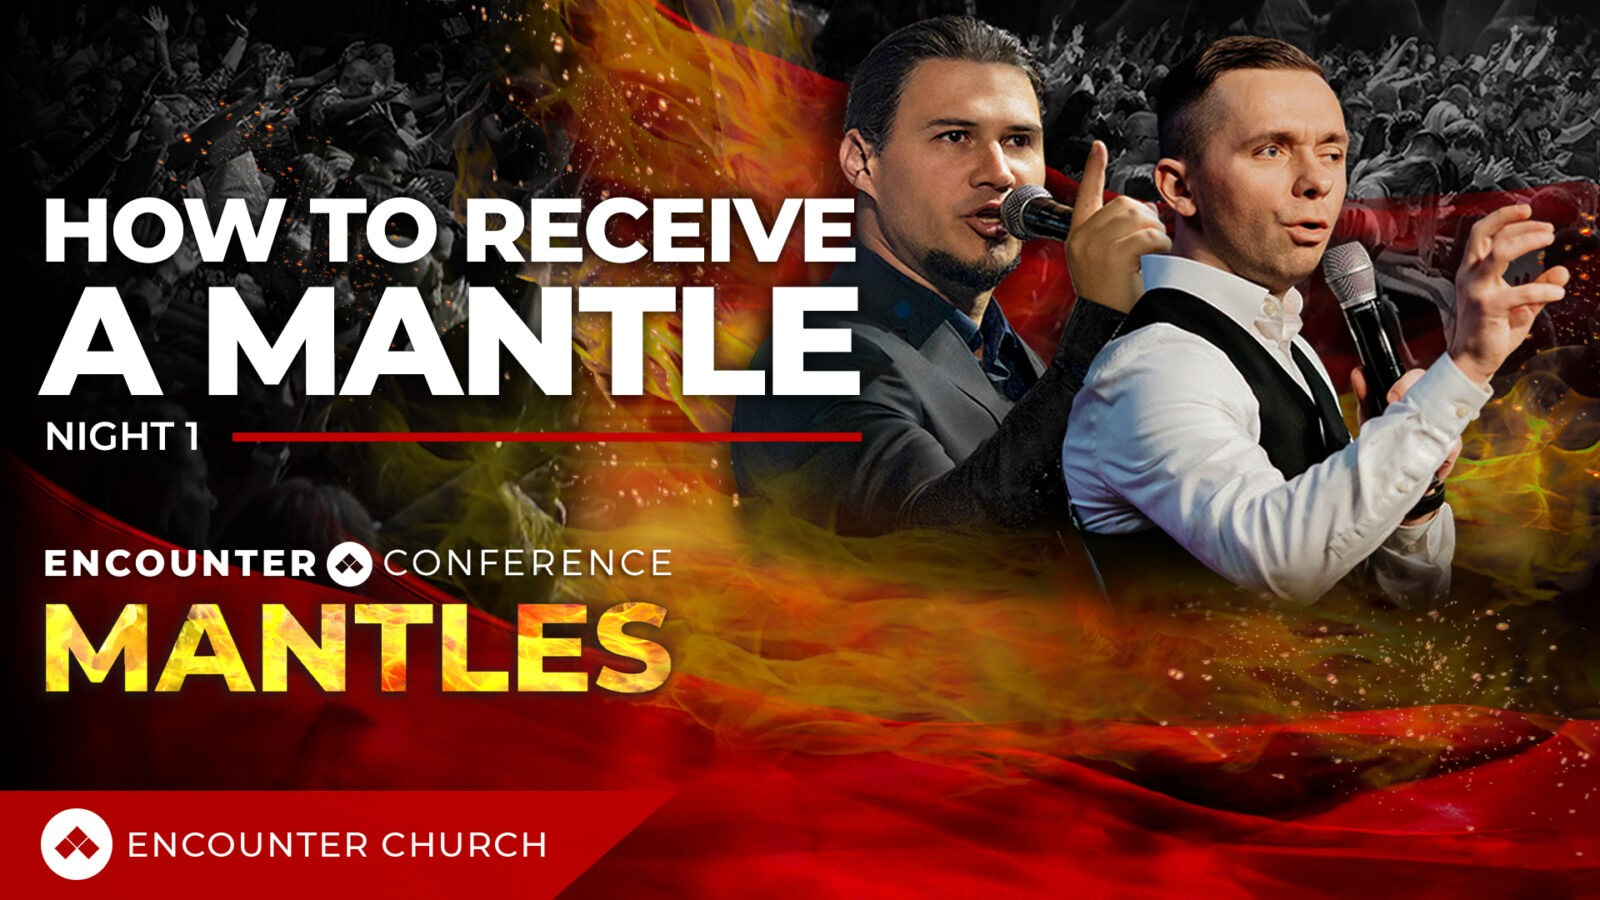 ENCOUNTER CONFERENCE – HOW TO RECEIVE A MANTLE